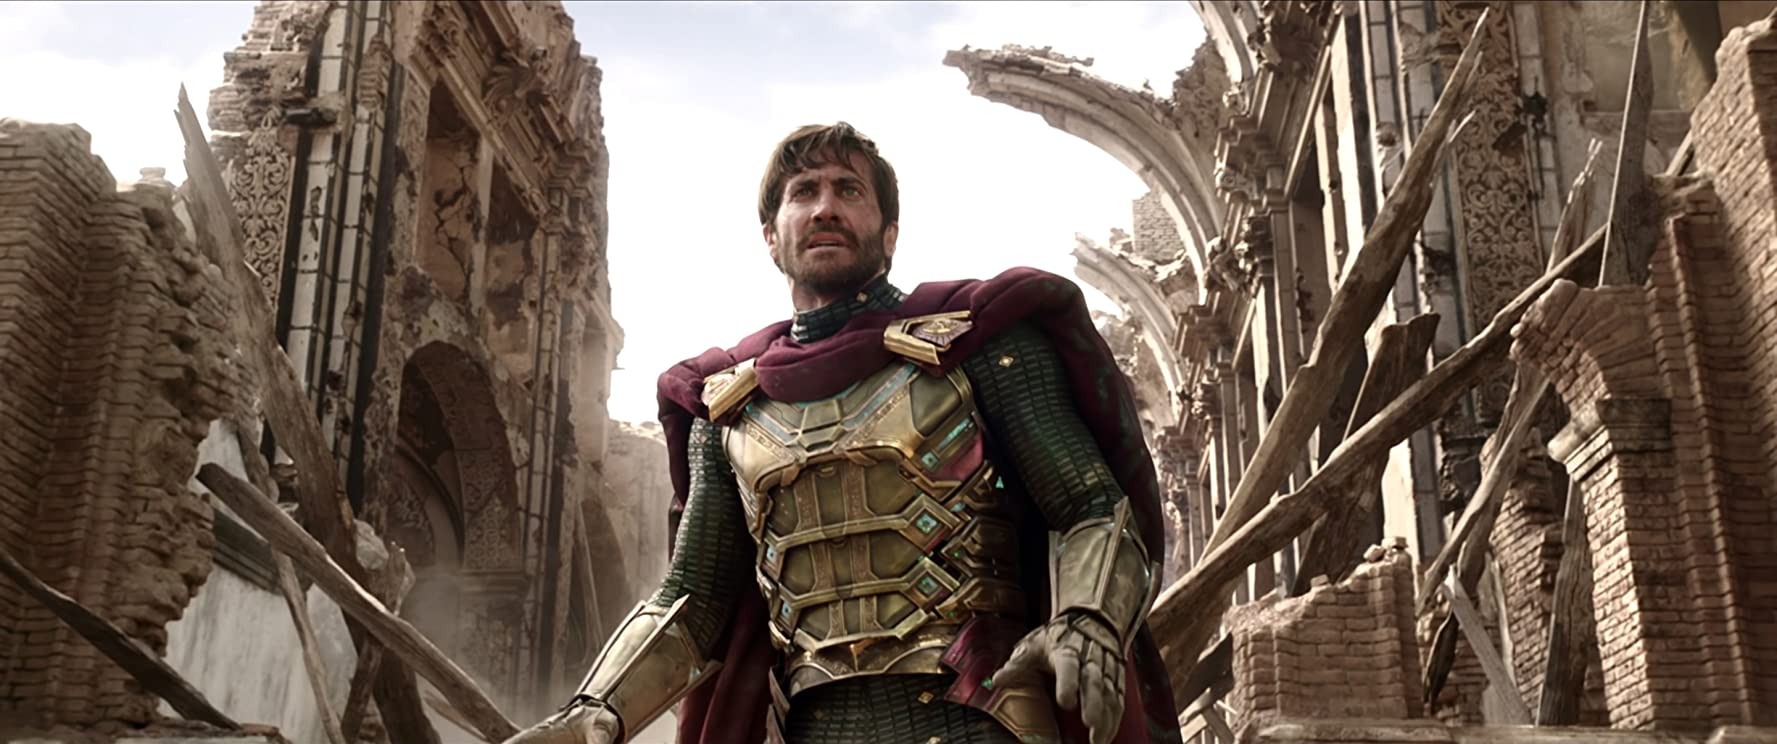 Jake Gyllenhaal kao Mysterio u Spider-Man: Far From Home